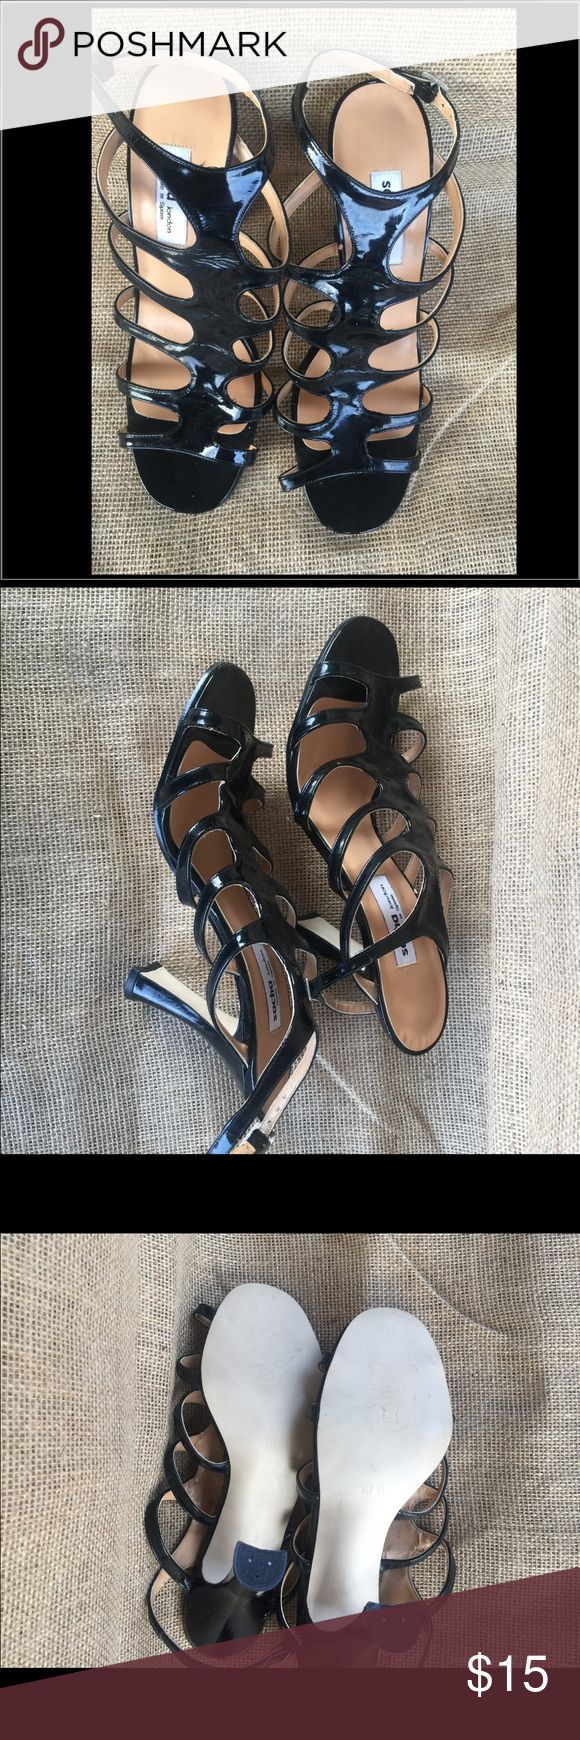 NEW Sacha London Blk Patent Lthr Strappy Sandal💐 🌻Blk Patent Lthr💐New never worn🌸No box 📦🌹size 10🌺See pic - under strap the lining is peeling from sitting in closet. Sacha Shoes Sandals